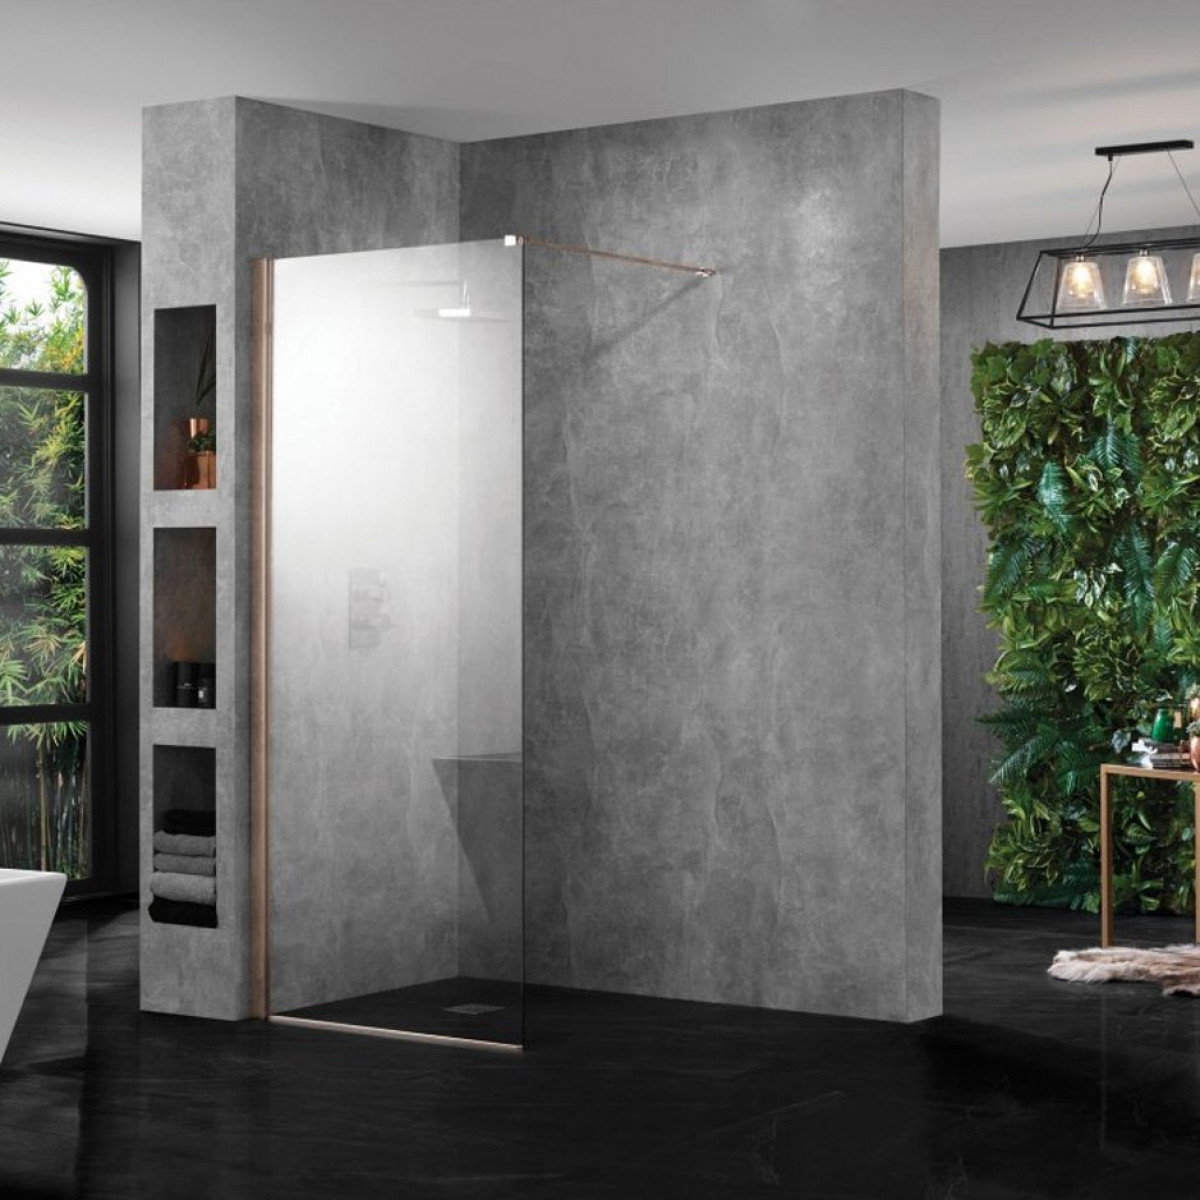 in drain image glass nero enclosure room wetroom panel rooms inc milano and wet showers walk shower recessed enclosures return